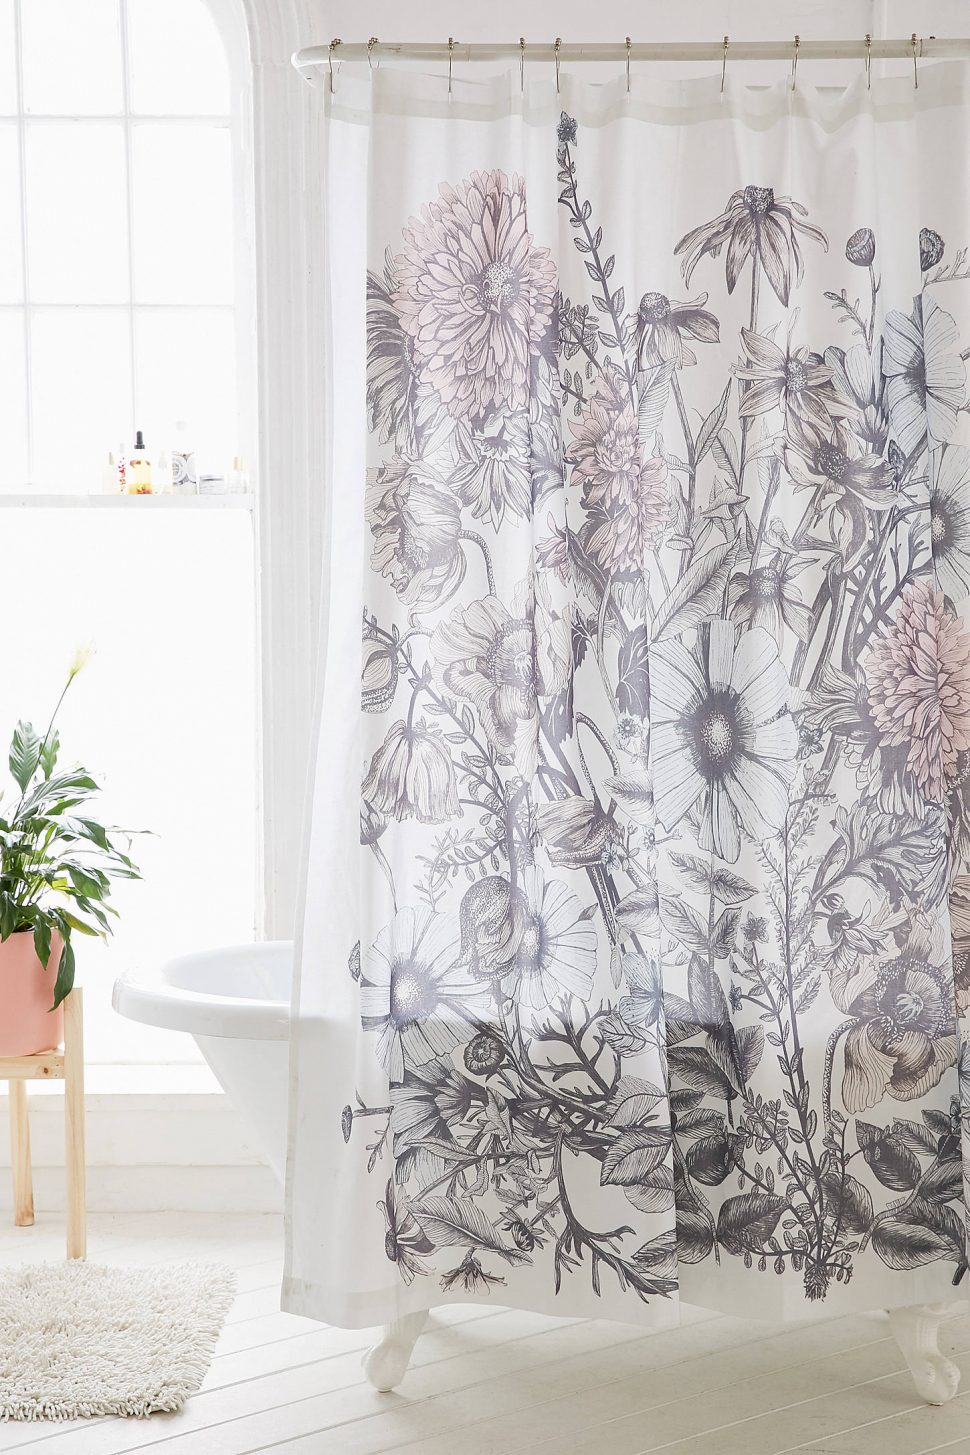 Ivory Shower Curtains | Blue and Orange Shower Curtain | Floral Shower Curtain